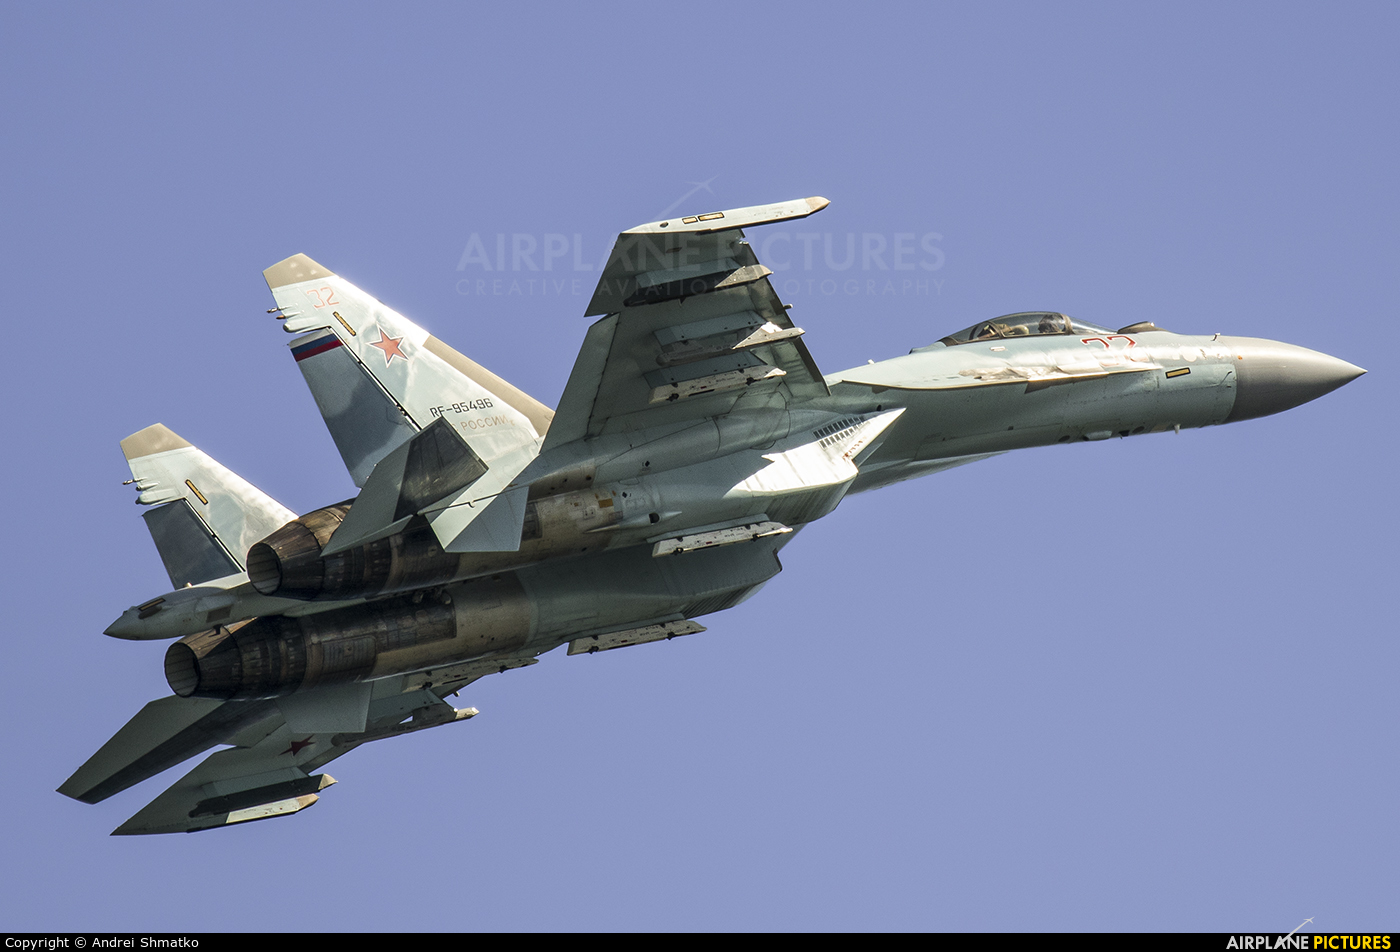 Russia - Air Force RF-95496 aircraft at Off Airport - Russia